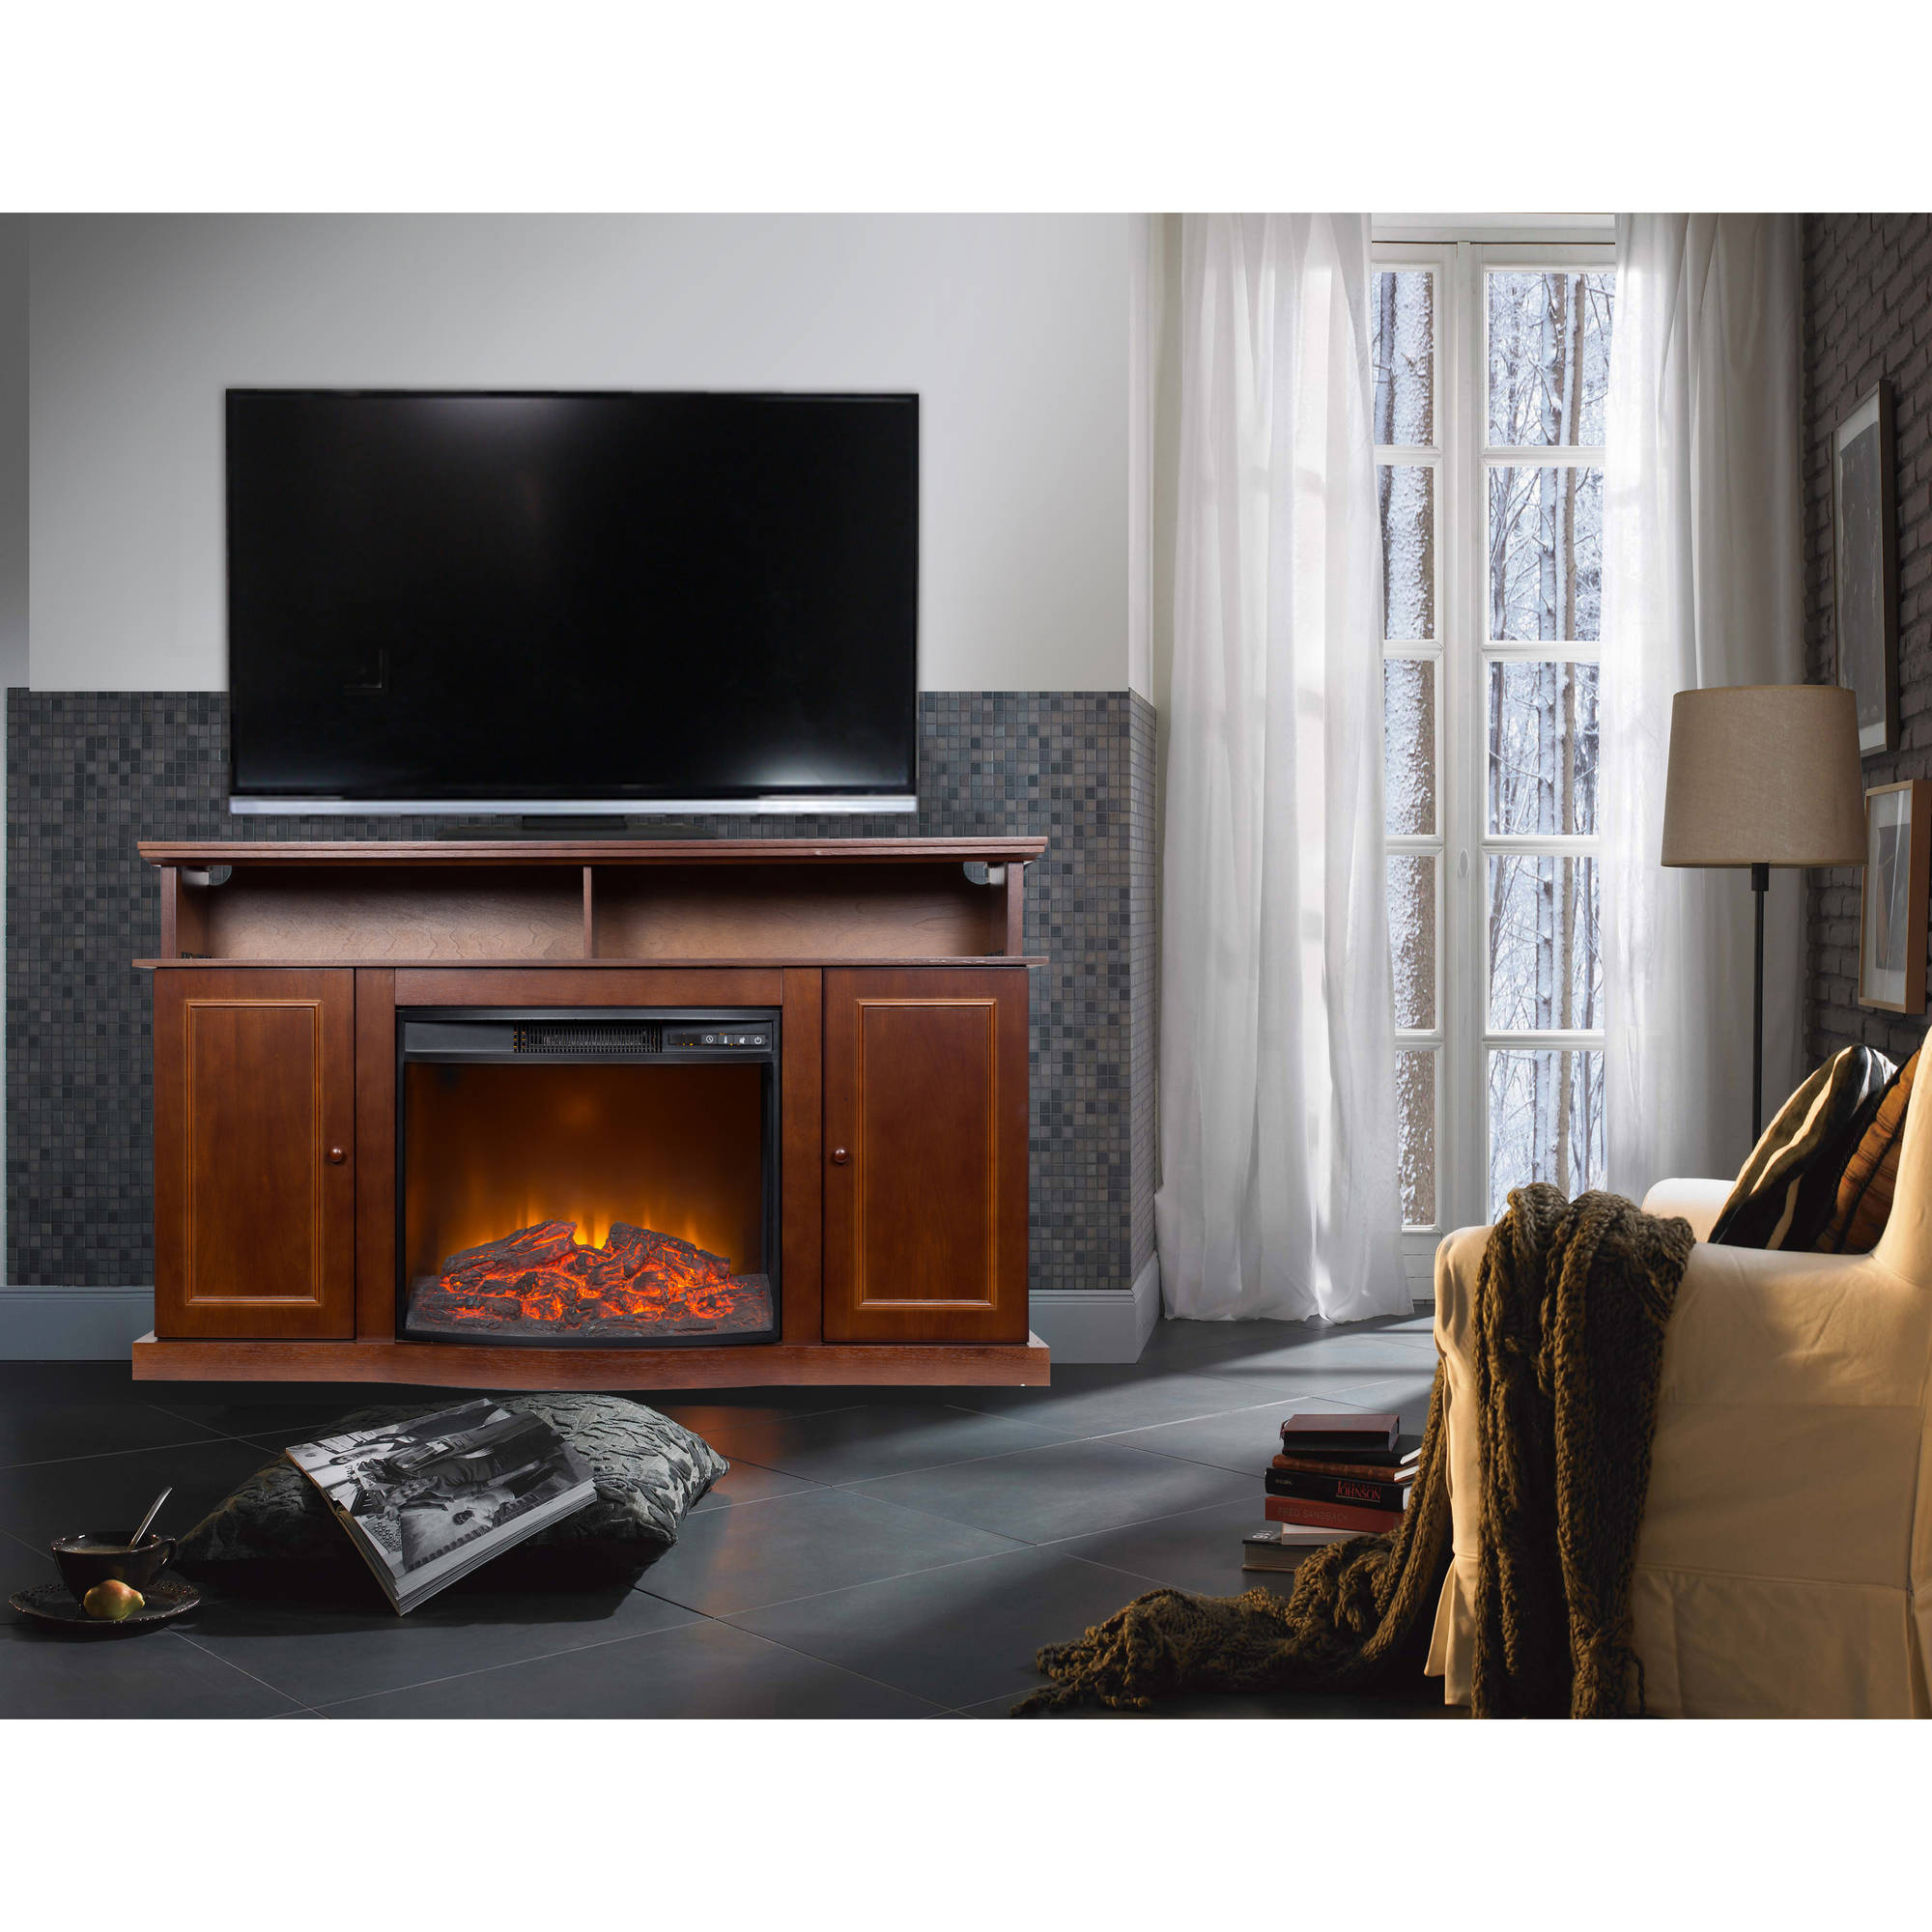 decor flame electric fireplaces